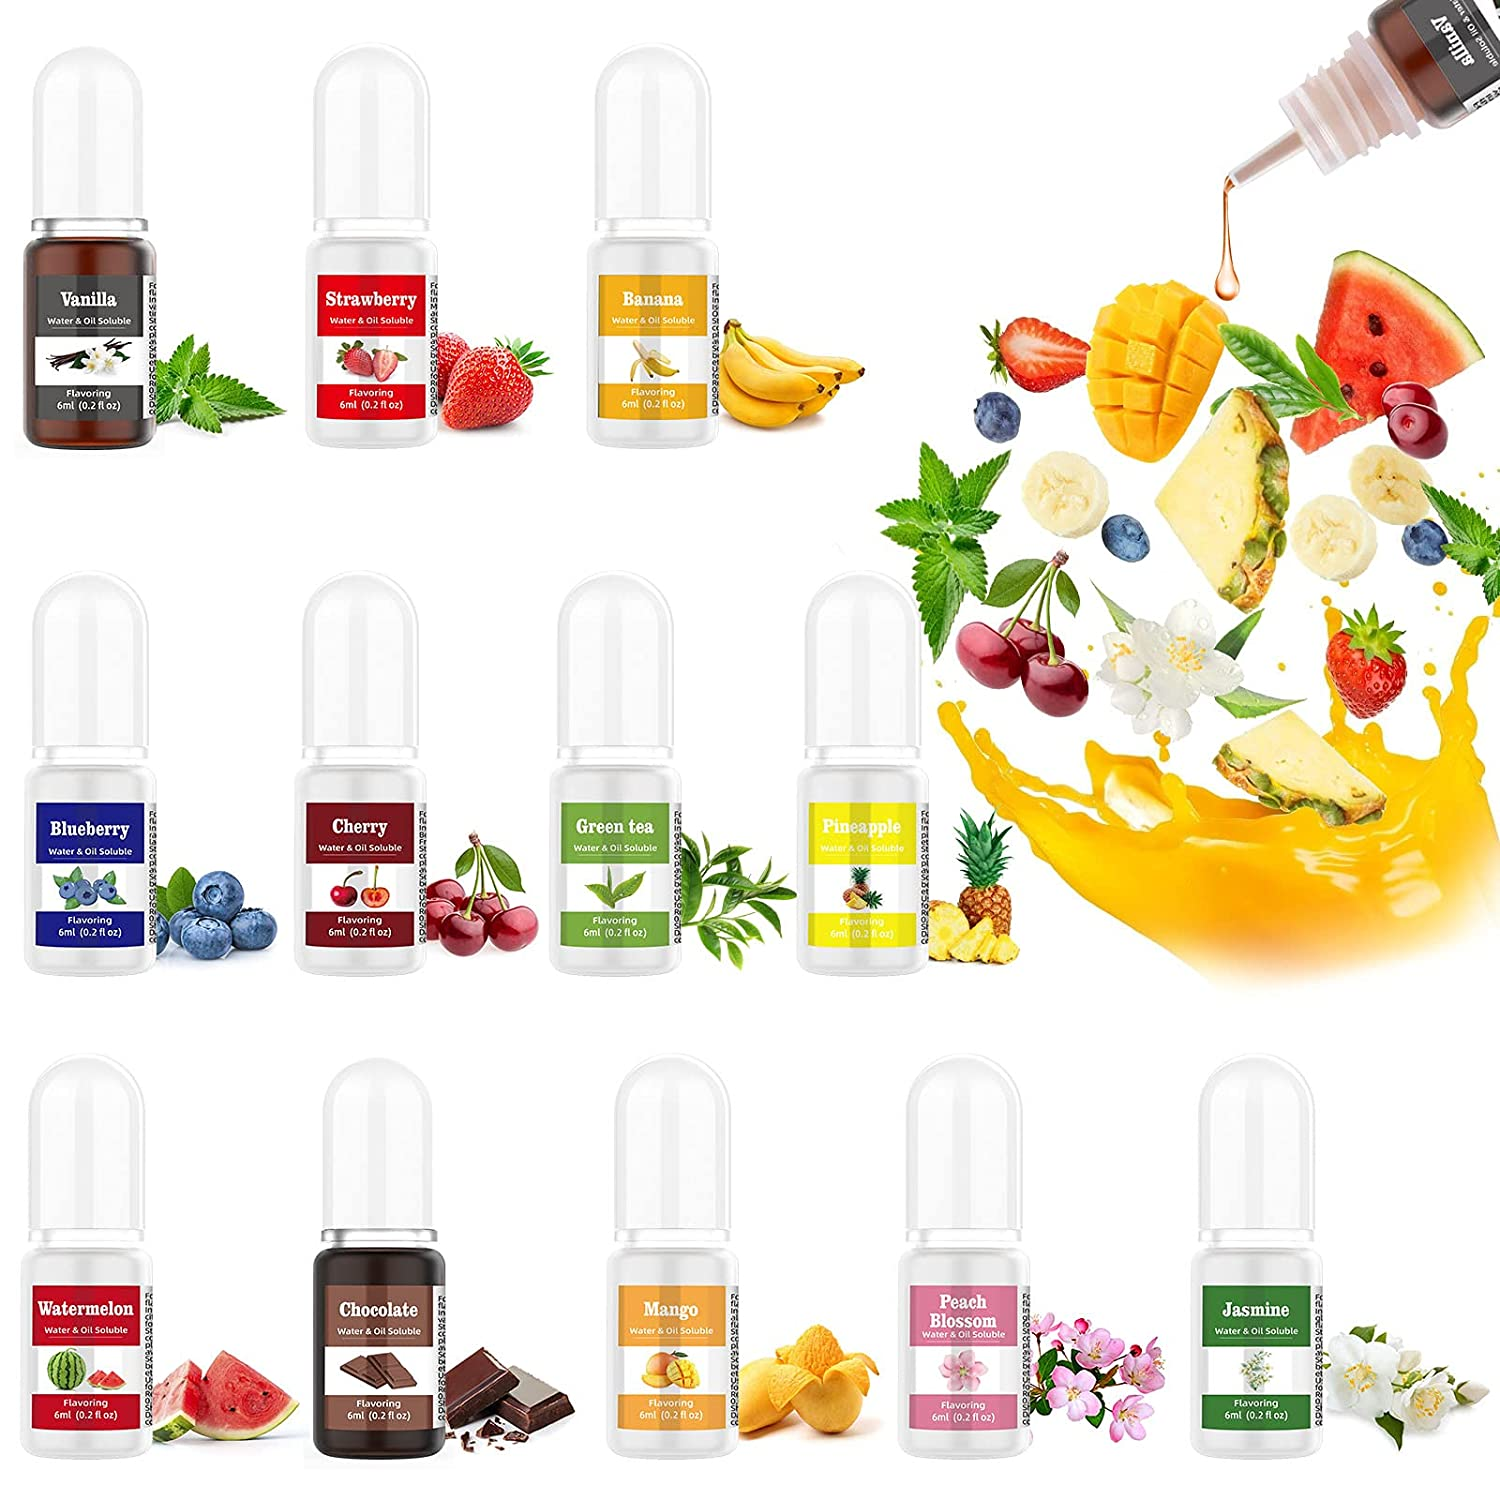 Food Flavoring Oil for Lip Gloss Candy Making, 12 Pack Lip Gloss Flavoring Oil, Green Tea Vanilla Banana Strawberry Flavor Extracts for Baking Lip Gloss Balm, Water & Oil Soluble - .2 Fl Oz / 6 ml